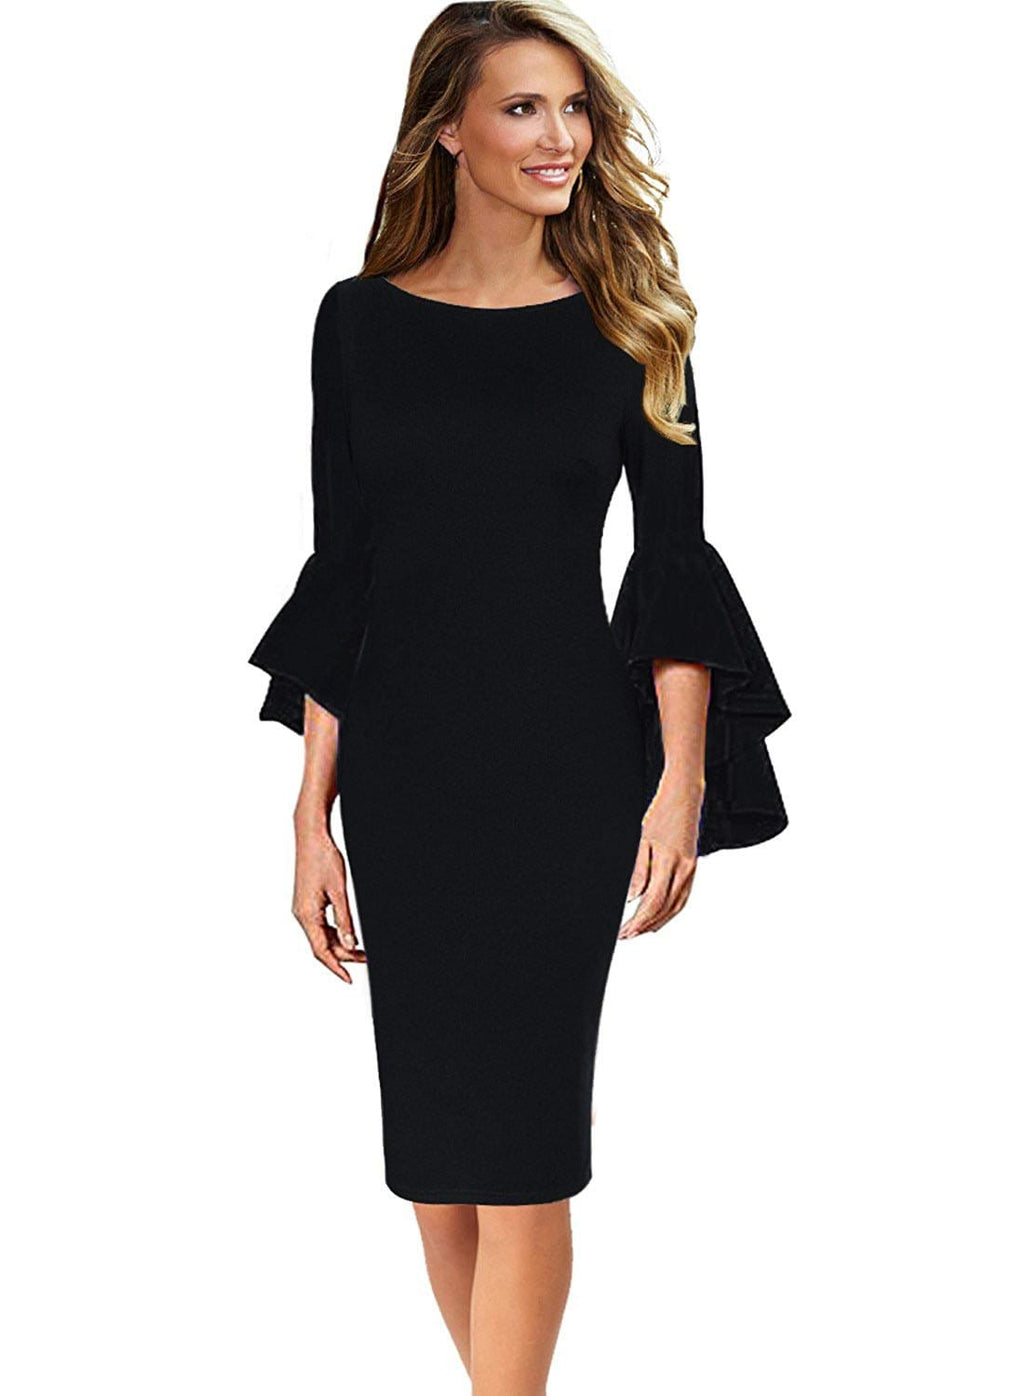 DAILYHAUTE Women's dress BLACK / S Haute Edition Women's Bell Sleeves Cocktail Party Dress